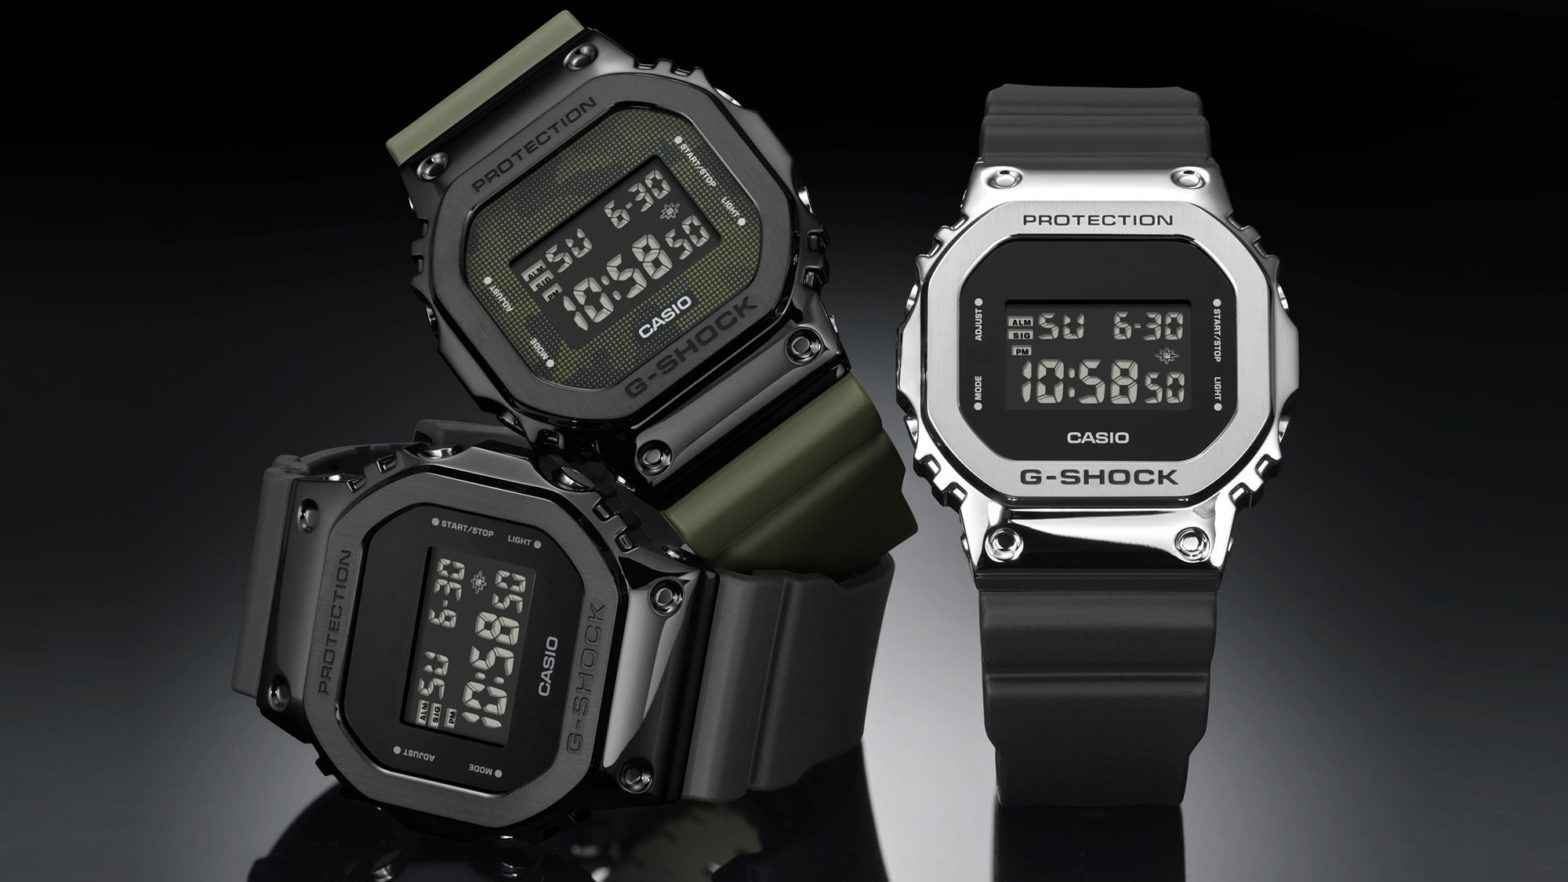 CASIO G-Shock 5600 Stainless Steel Bezel